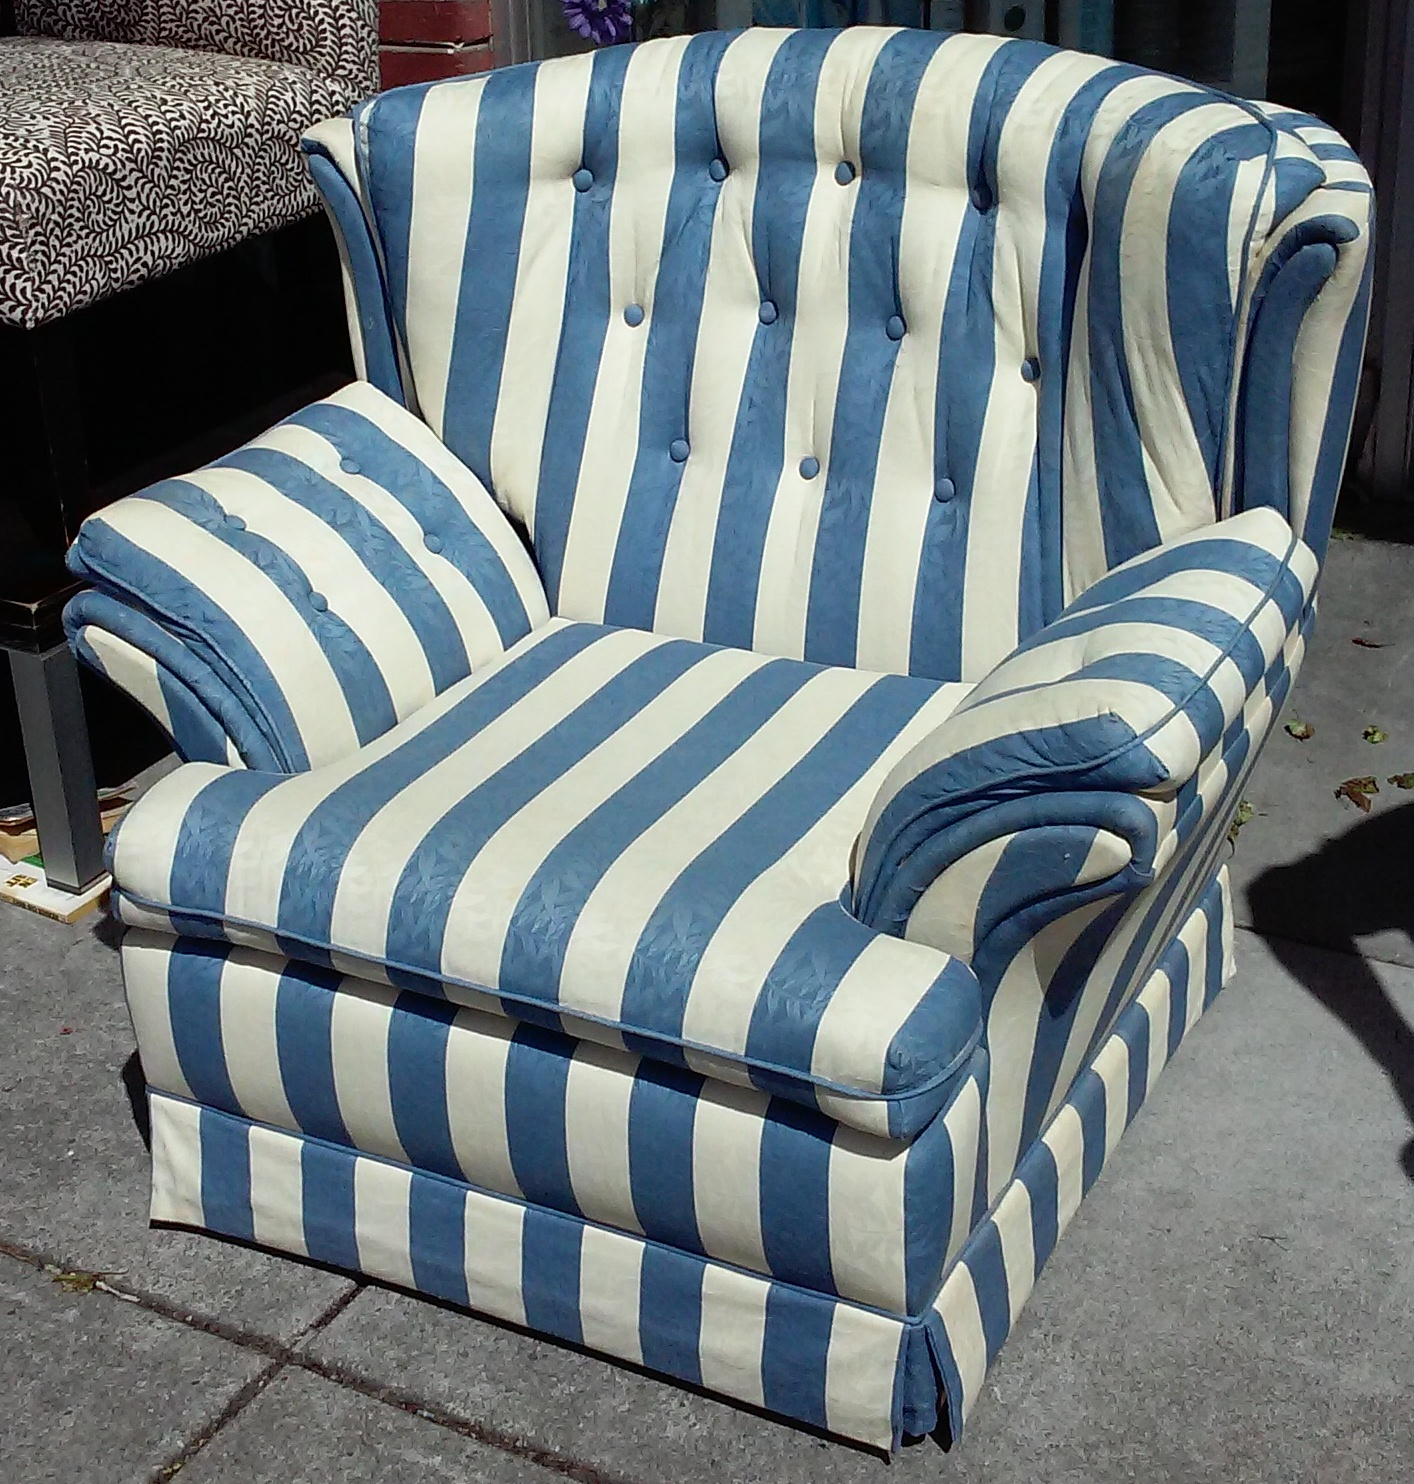 Blue And White Striped Chair Uhuru Furniture And Collectibles Sold Bold Blue And White